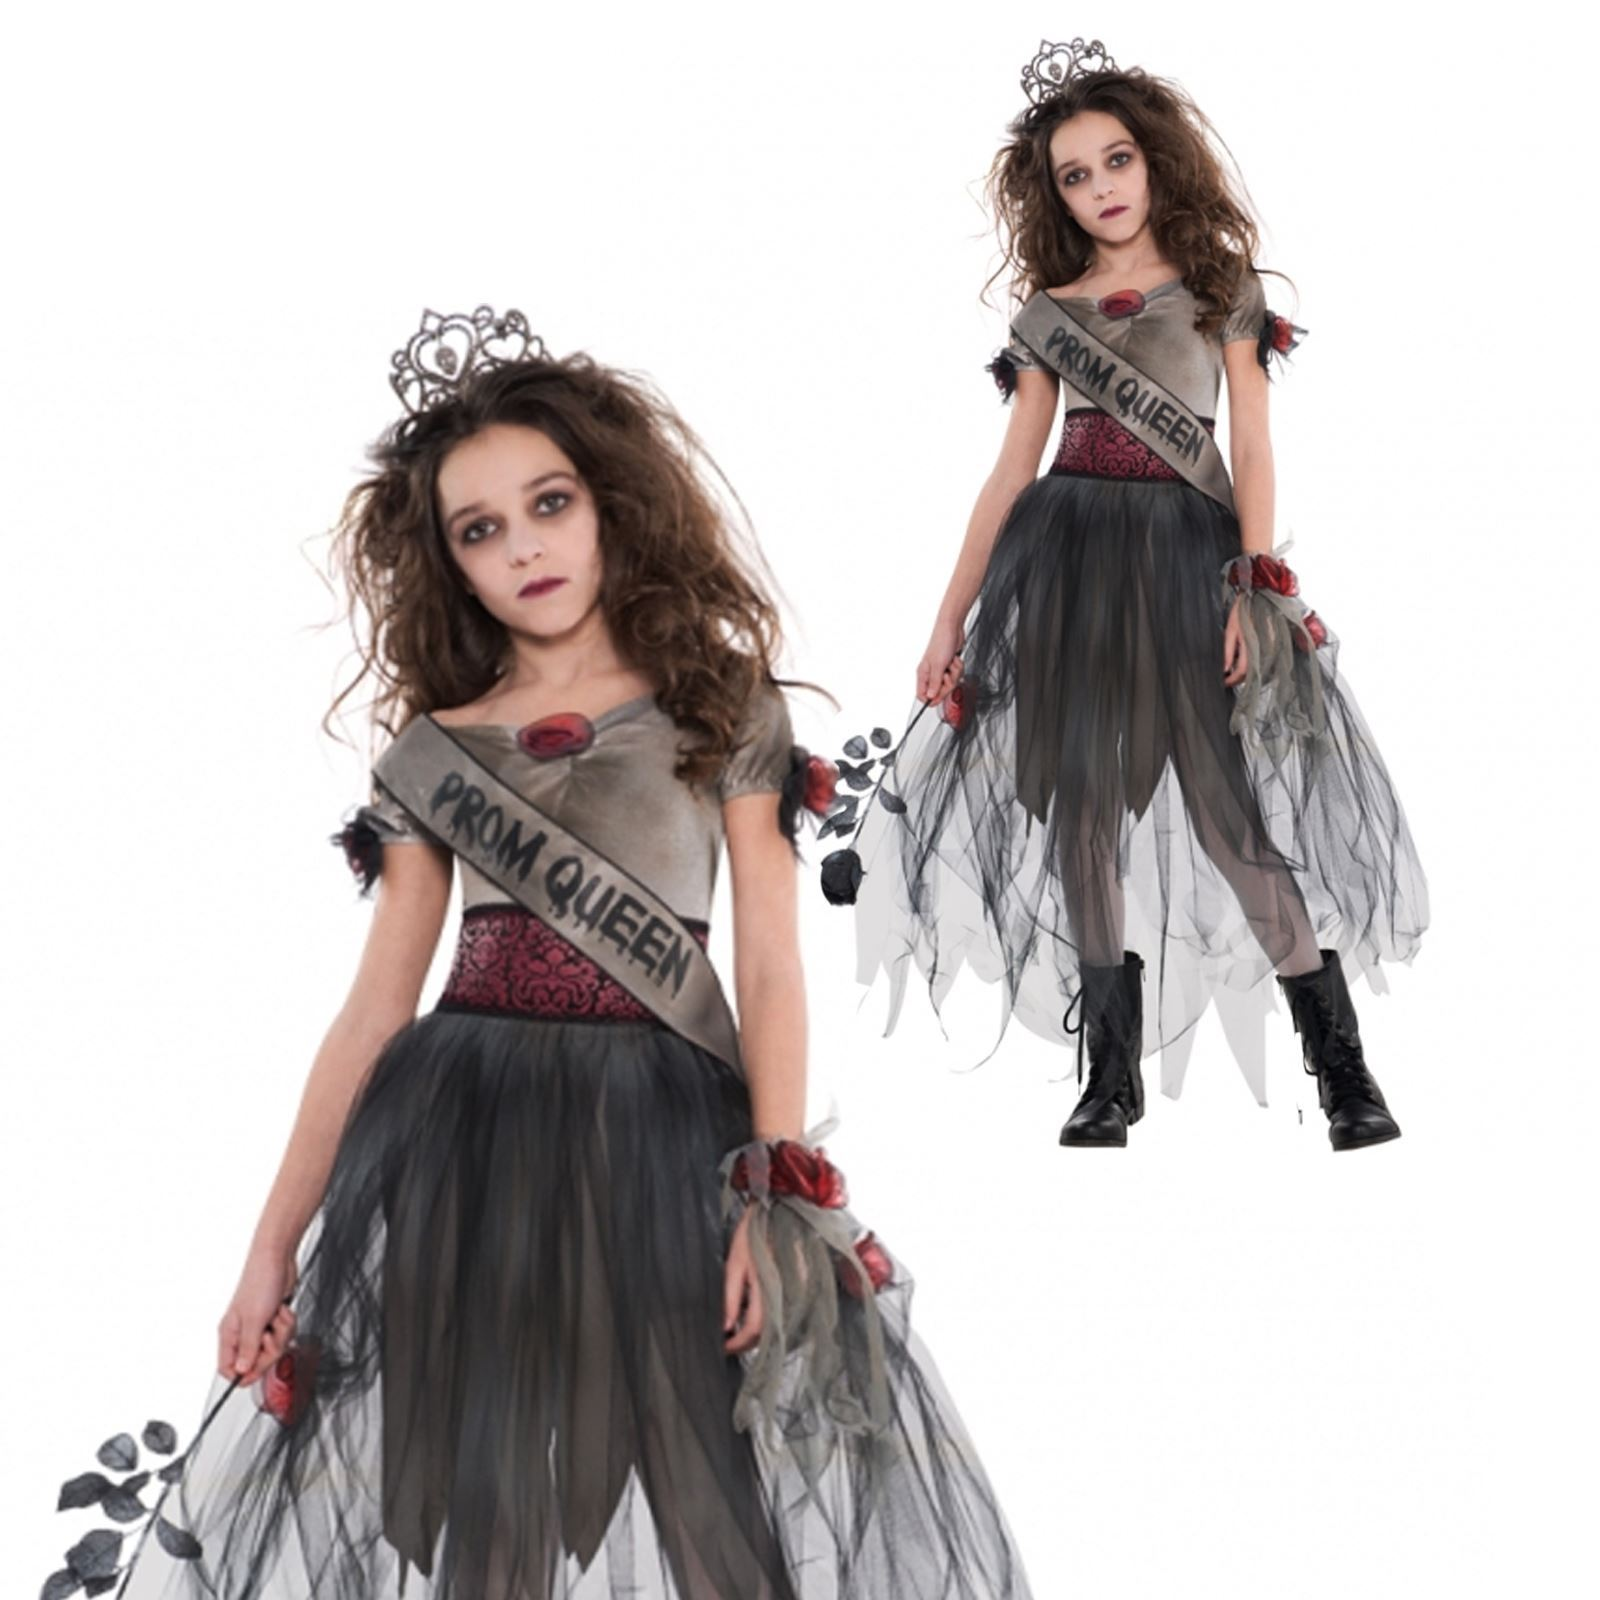 m dchen teenager kinder zombie prom queen halloween zombie kost m kleid outfit ebay. Black Bedroom Furniture Sets. Home Design Ideas